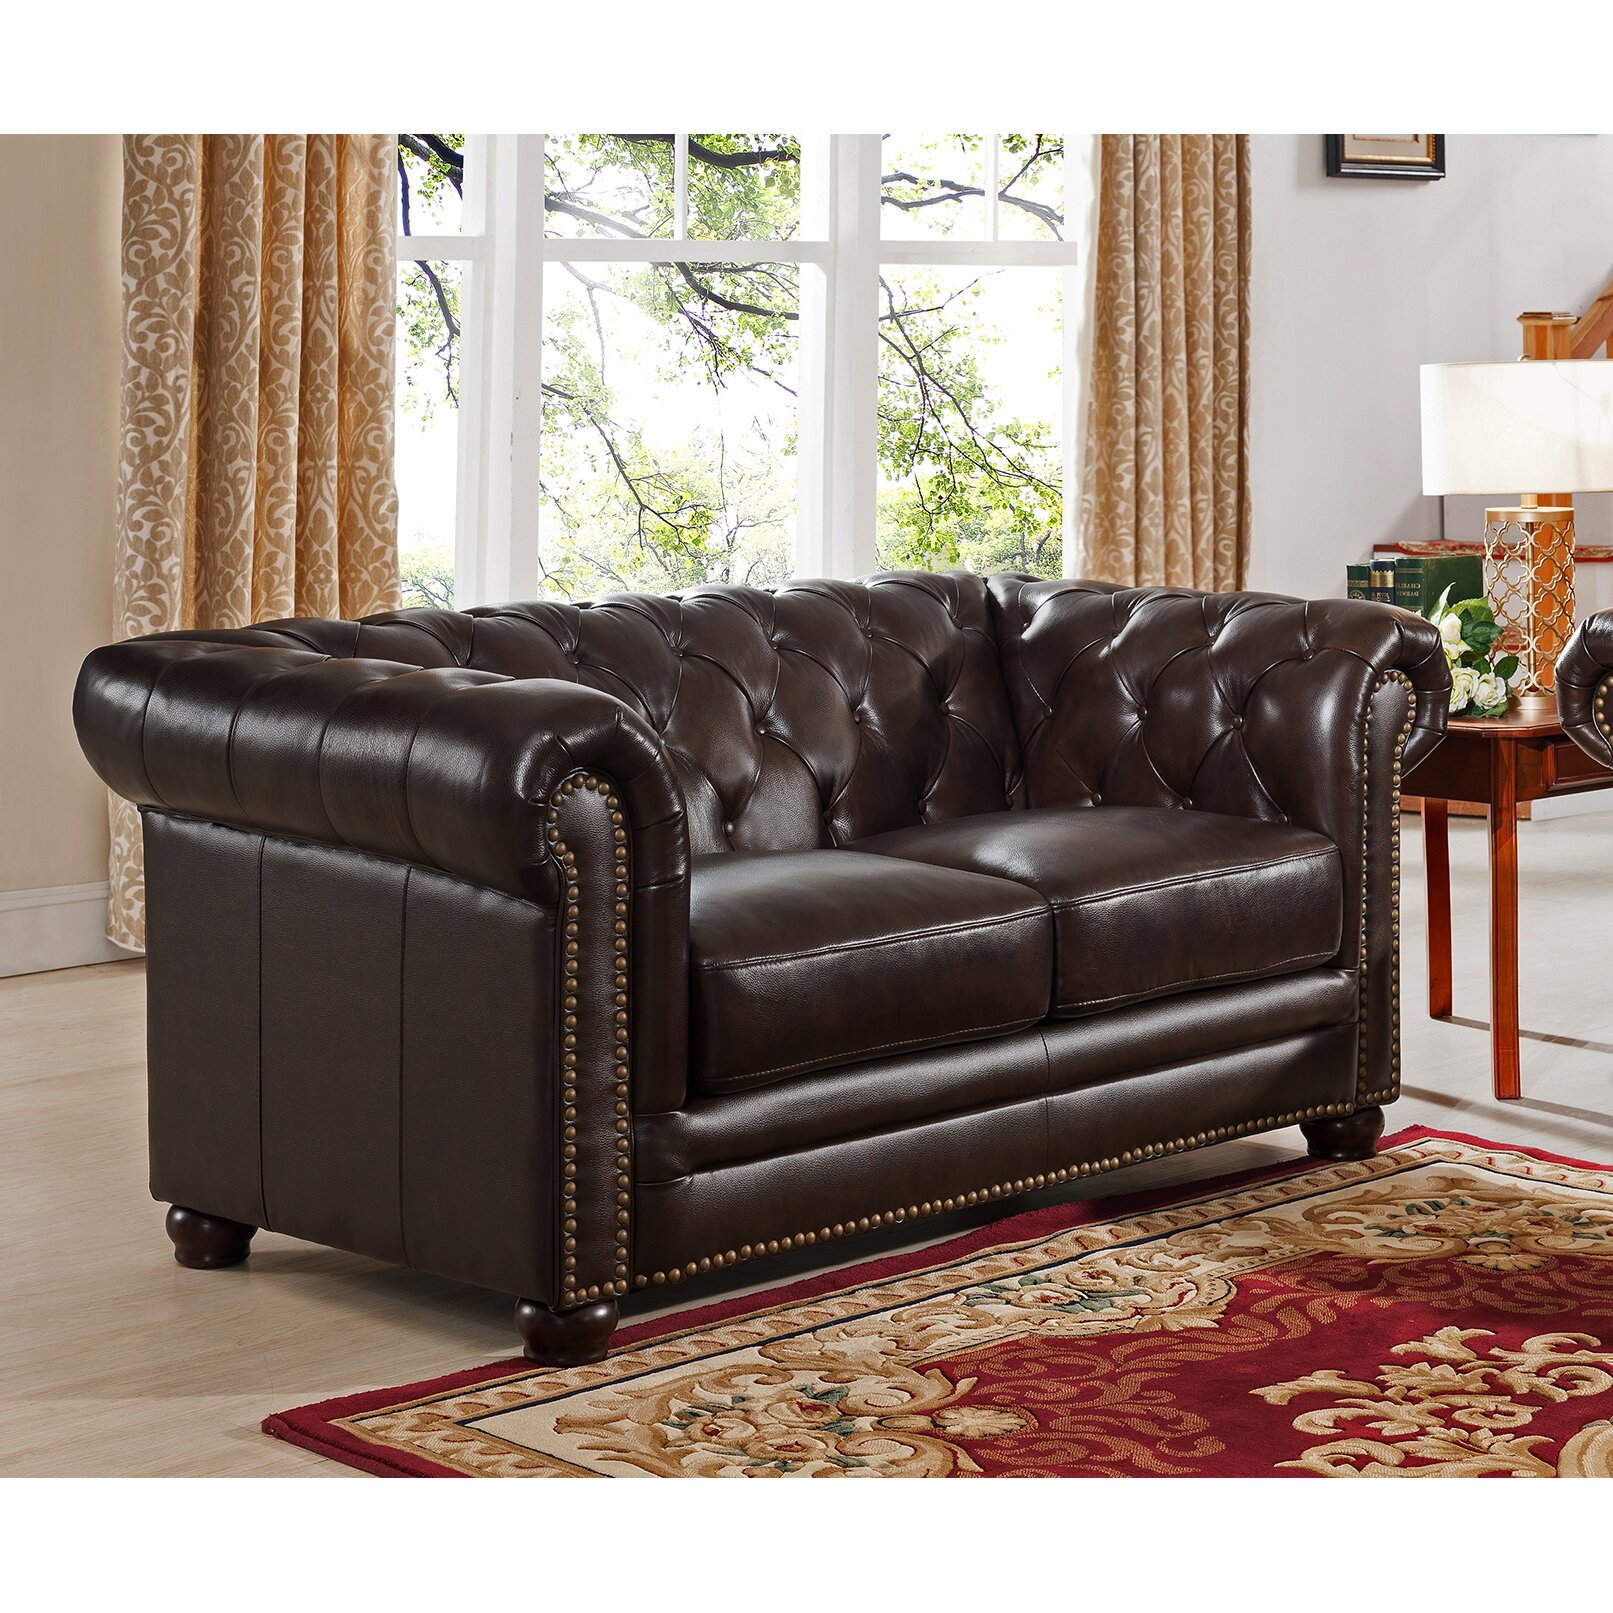 Amax Kensington Top Grain Leather Chesterfield Sofa, Loveseat, and Chair Set Wayfair